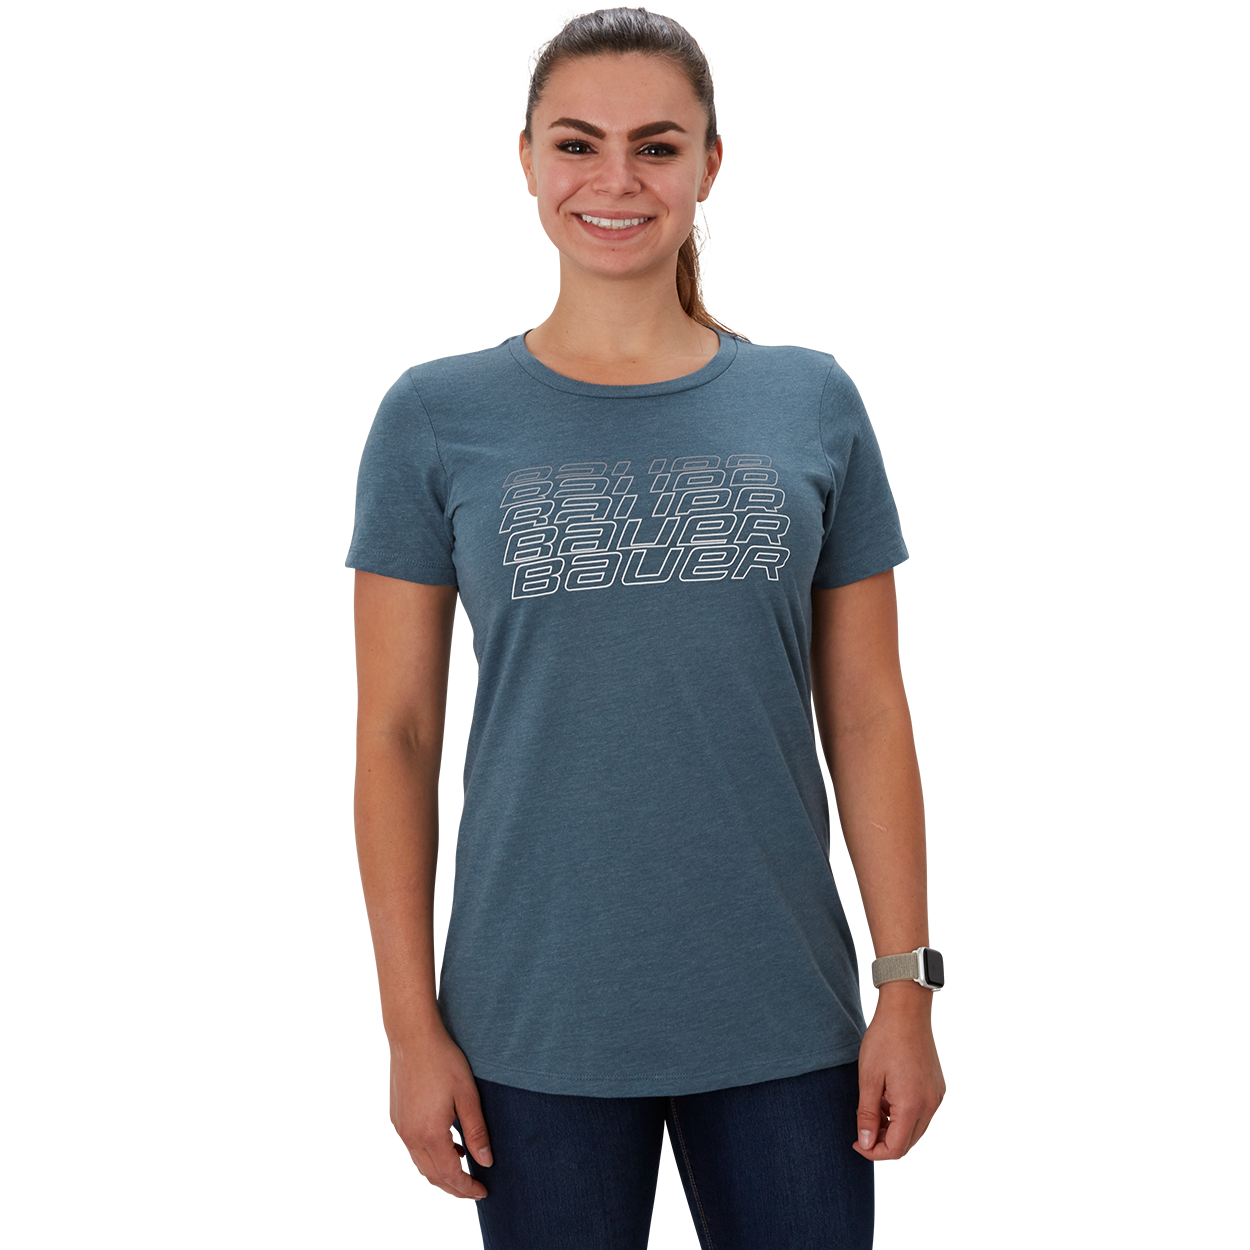 Fade Short Sleeve Women's T-Shirt,,Medium